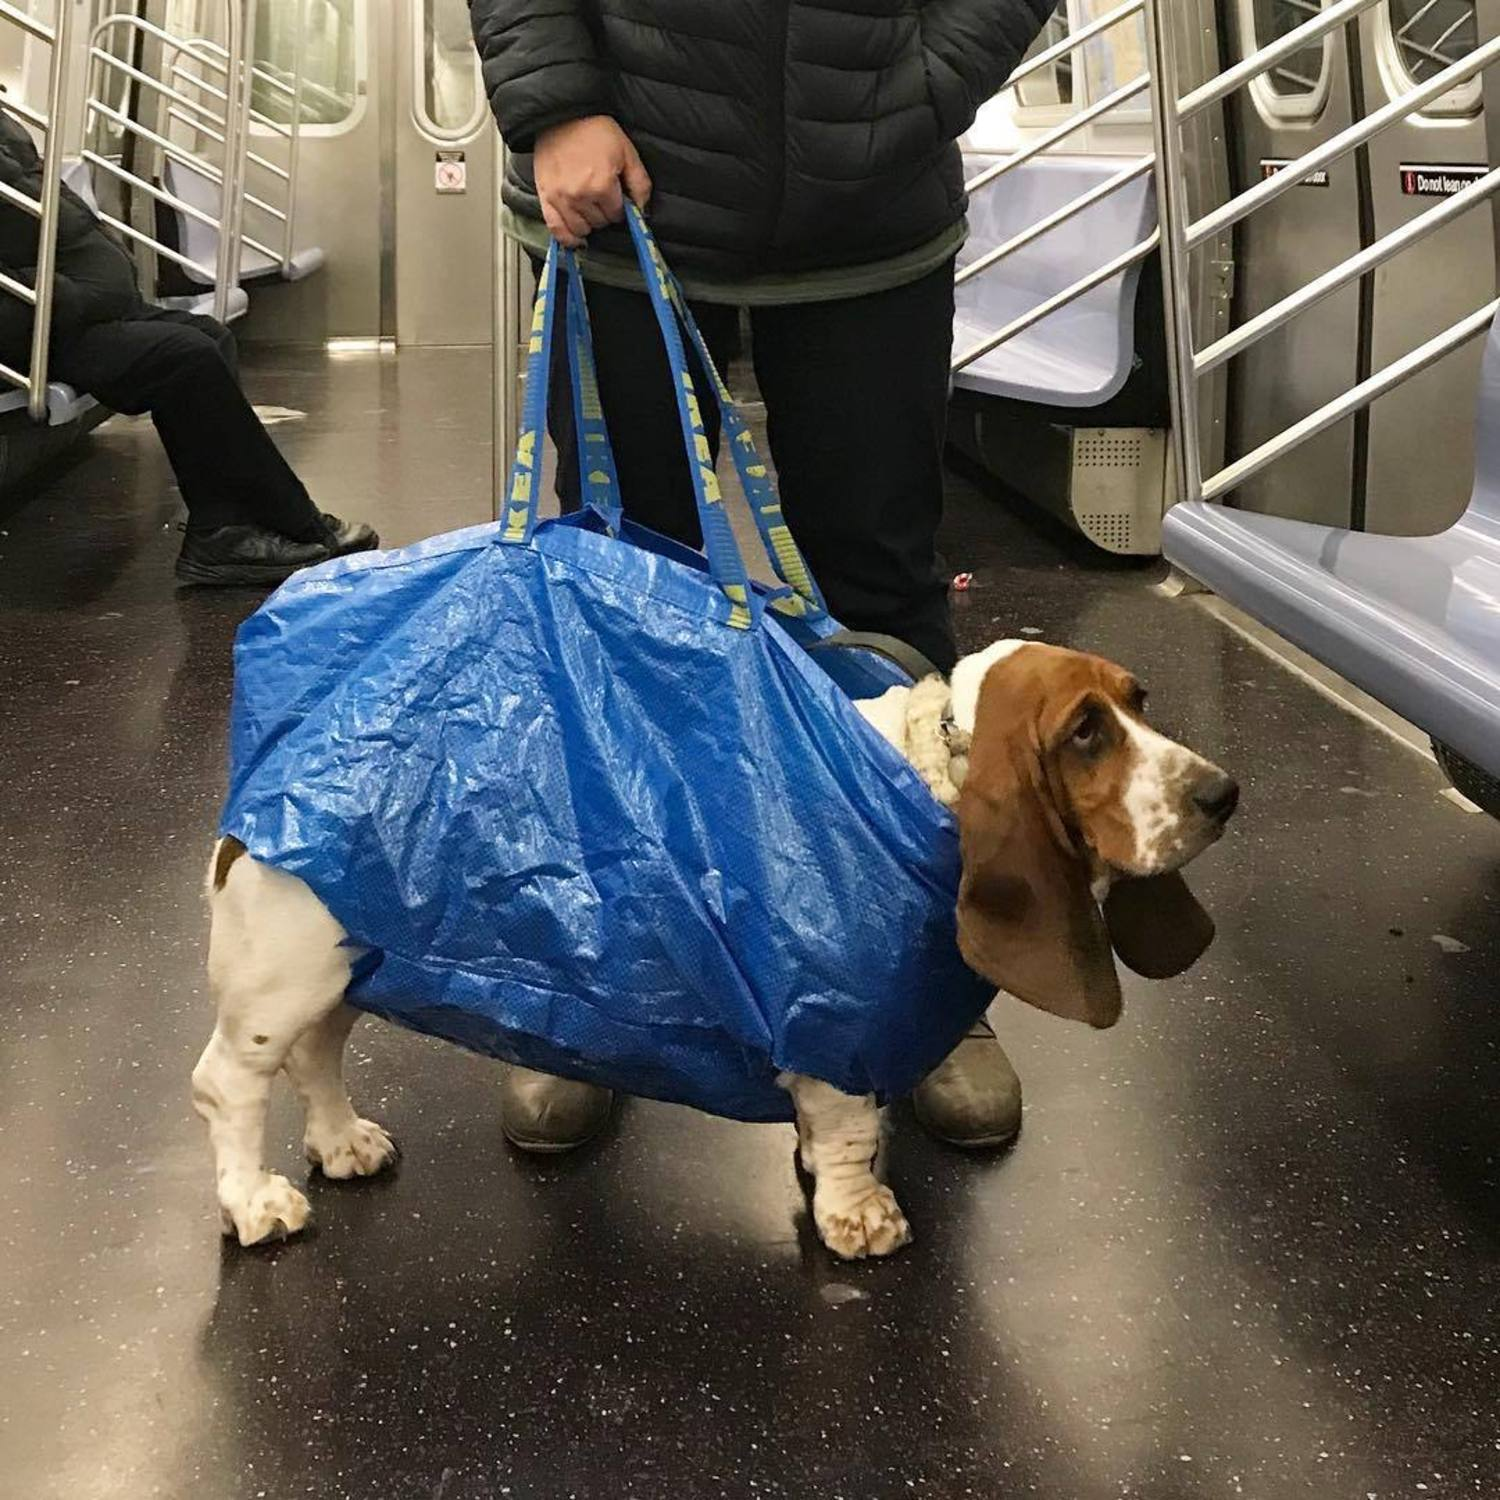 #tbt to my first time in an Ikea bag.